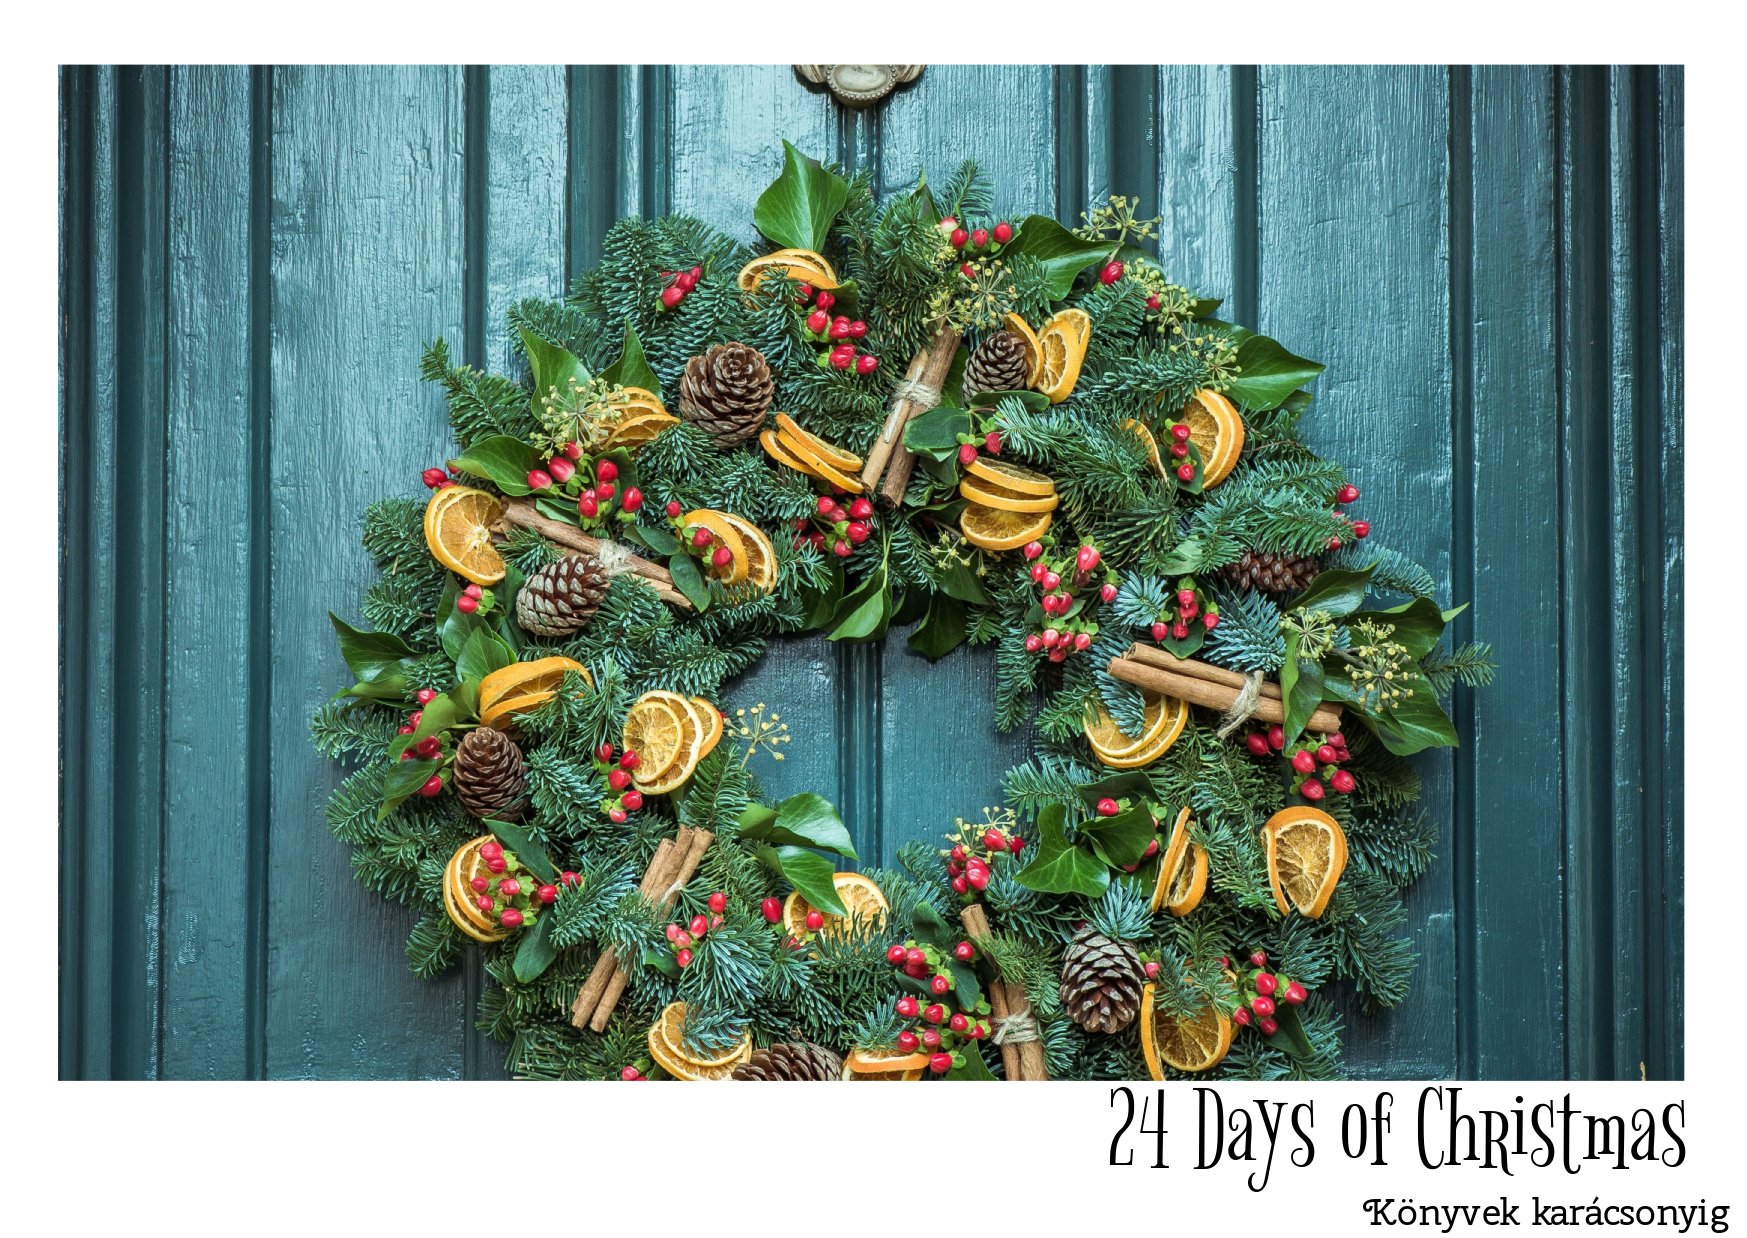 24_days_of_christmas_2016_03.jpg